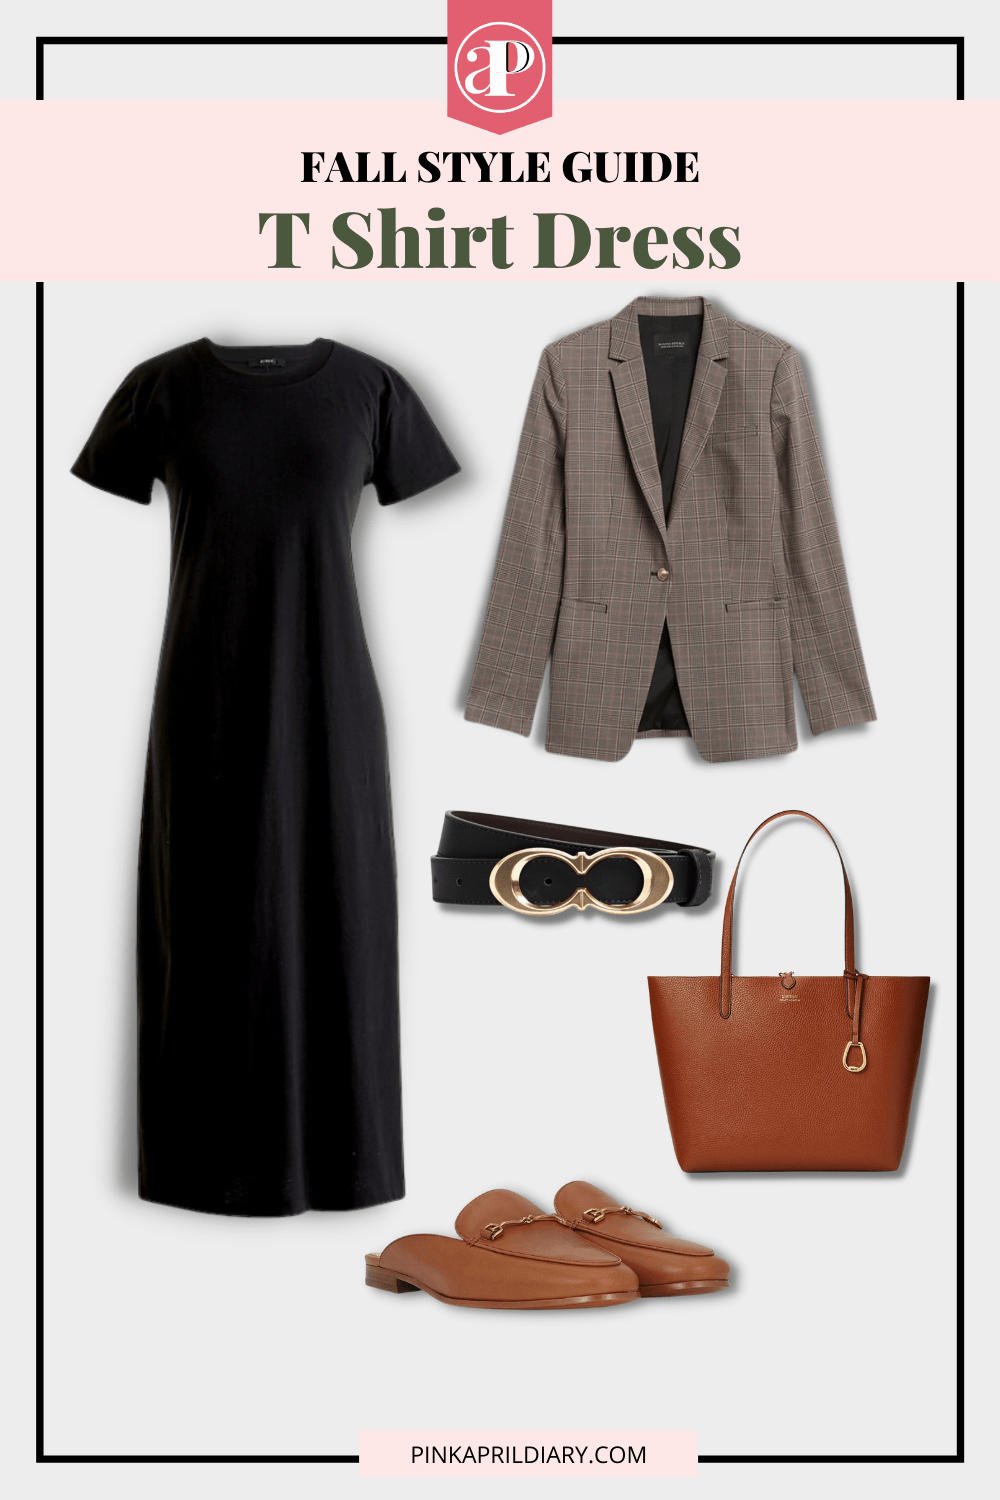 Fall Styling for a T Shirt Dress - outfit 1